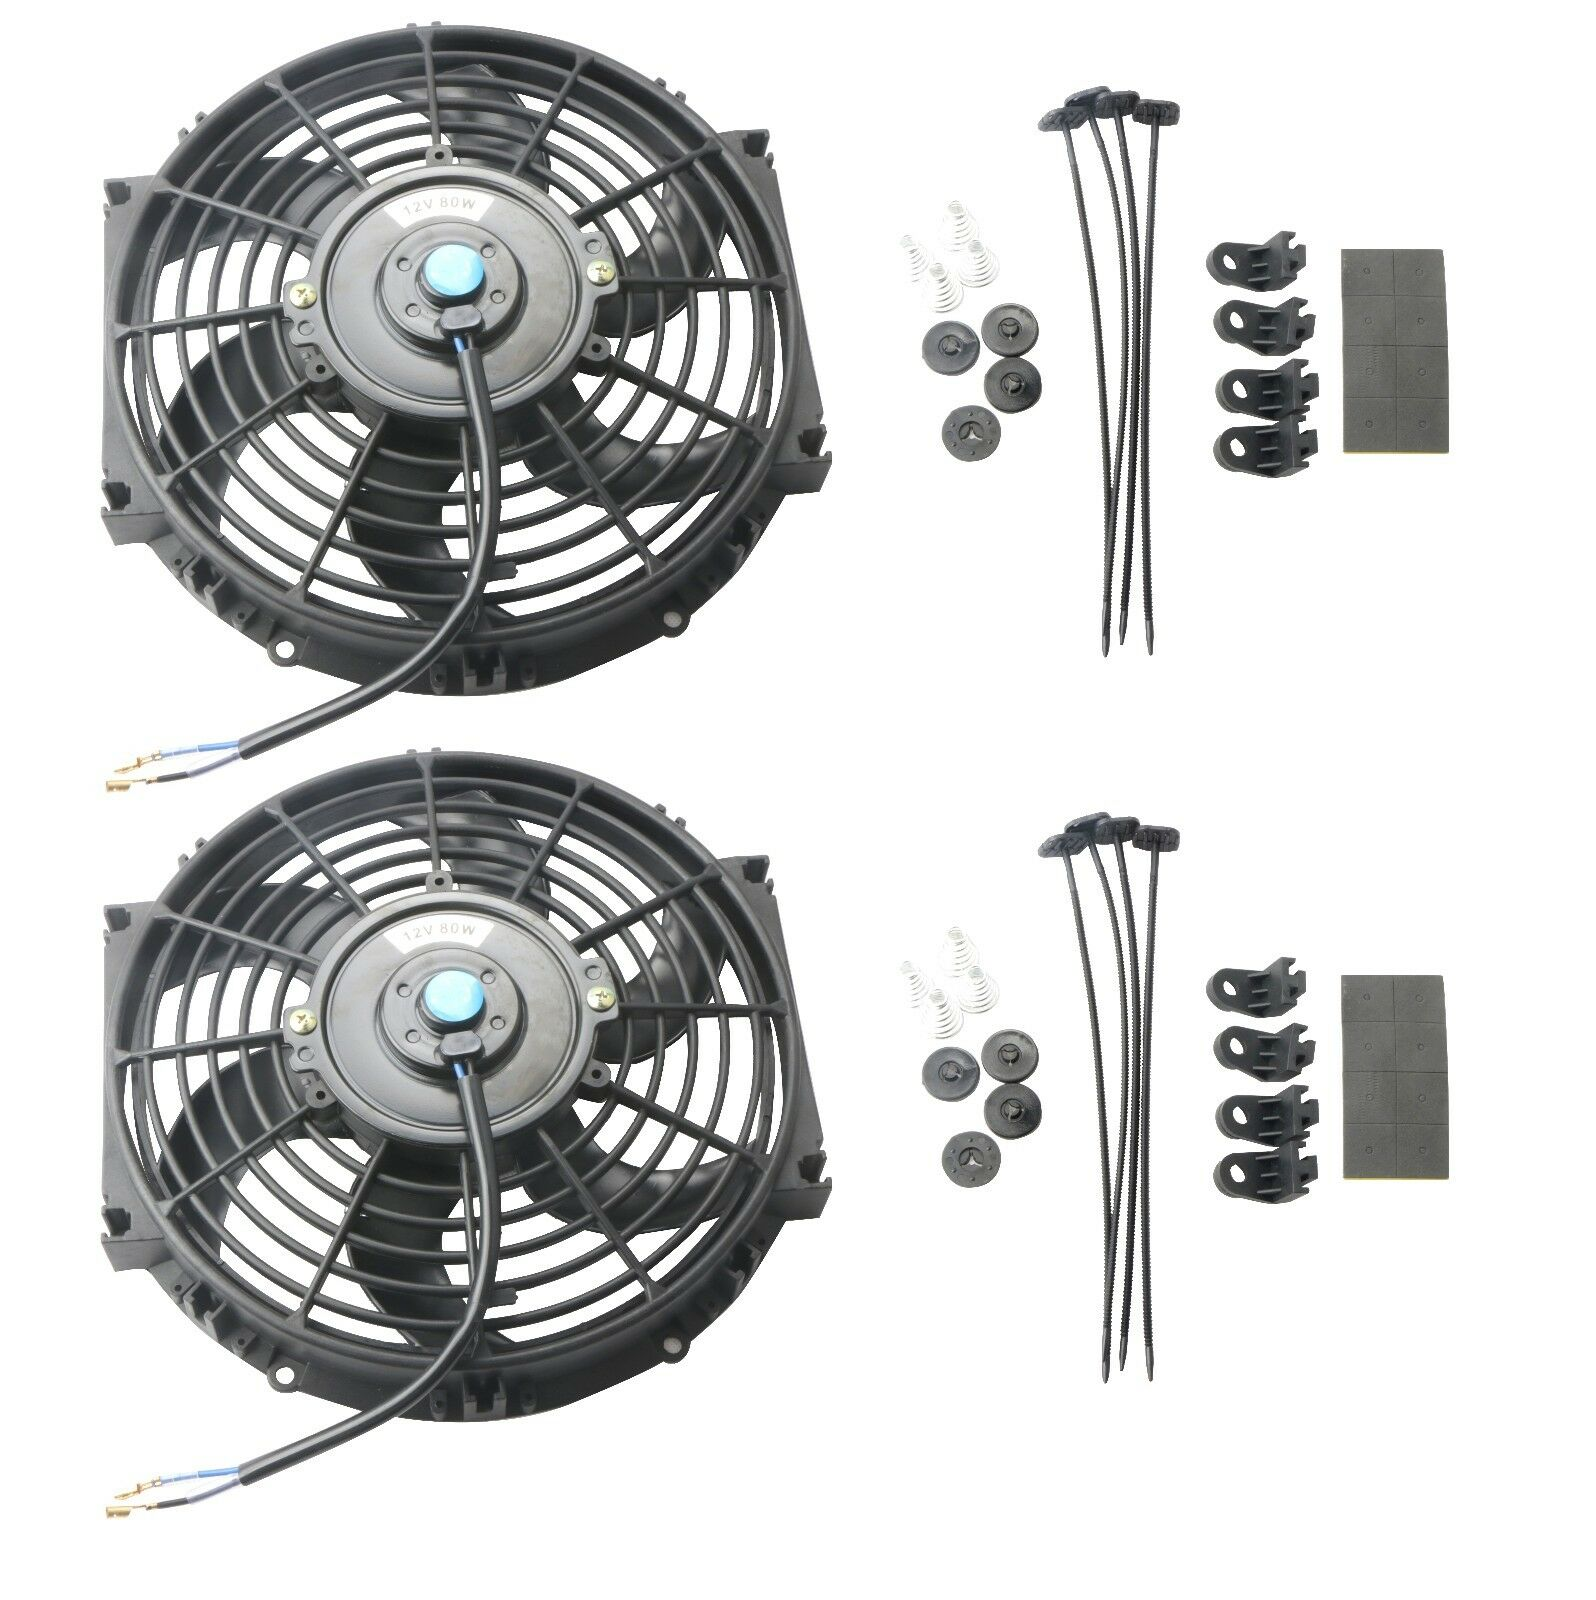 "2x 9/"" Universal Slim Fan Push Pull Electric Radiator Cooling Motor Kit Black"